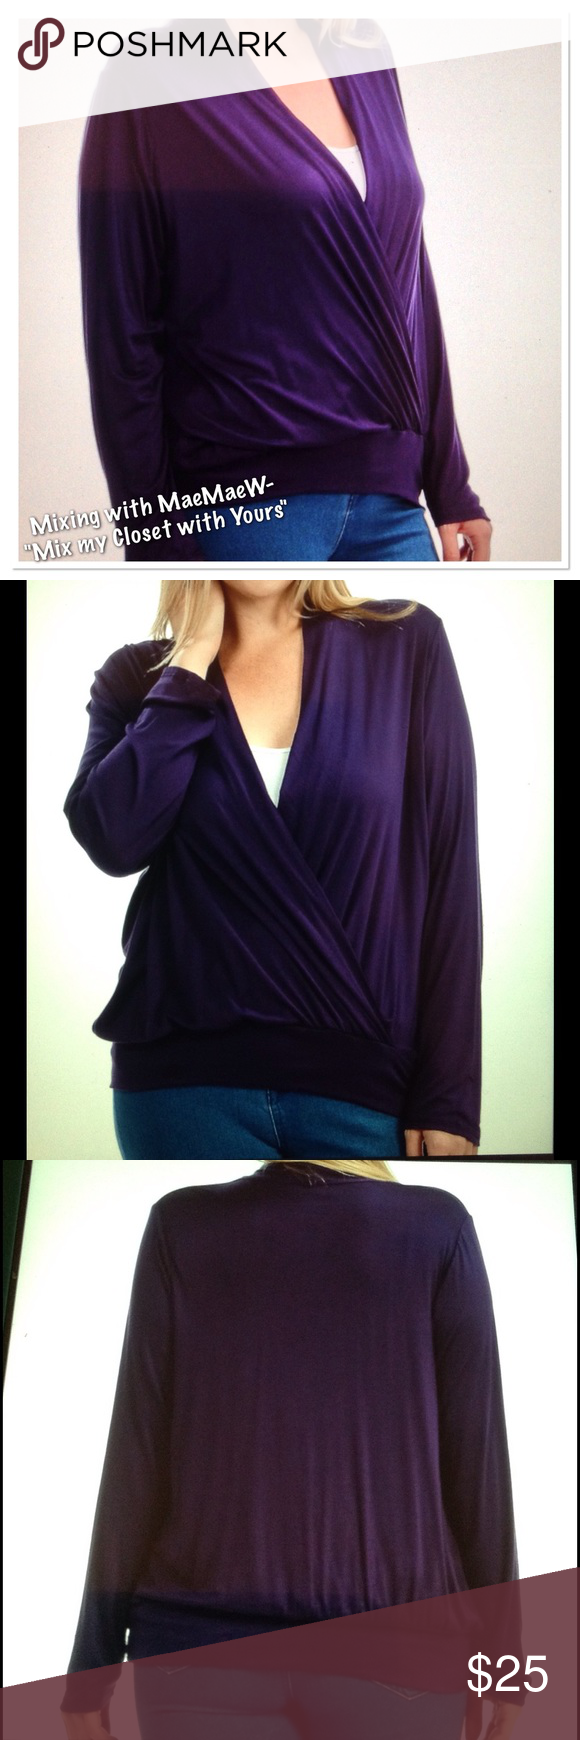 """🆕 """"Plus-Crossover Long Sleeve Top""""-Plum  🎉SALE🎉 My go to style to camouflage my tummy! Flattering style and color (purple). Made in USA🇺🇸.                Materials: 97% Rayon, 3% Spandex Bellino Clothing Tops Tees - Long Sleeve"""